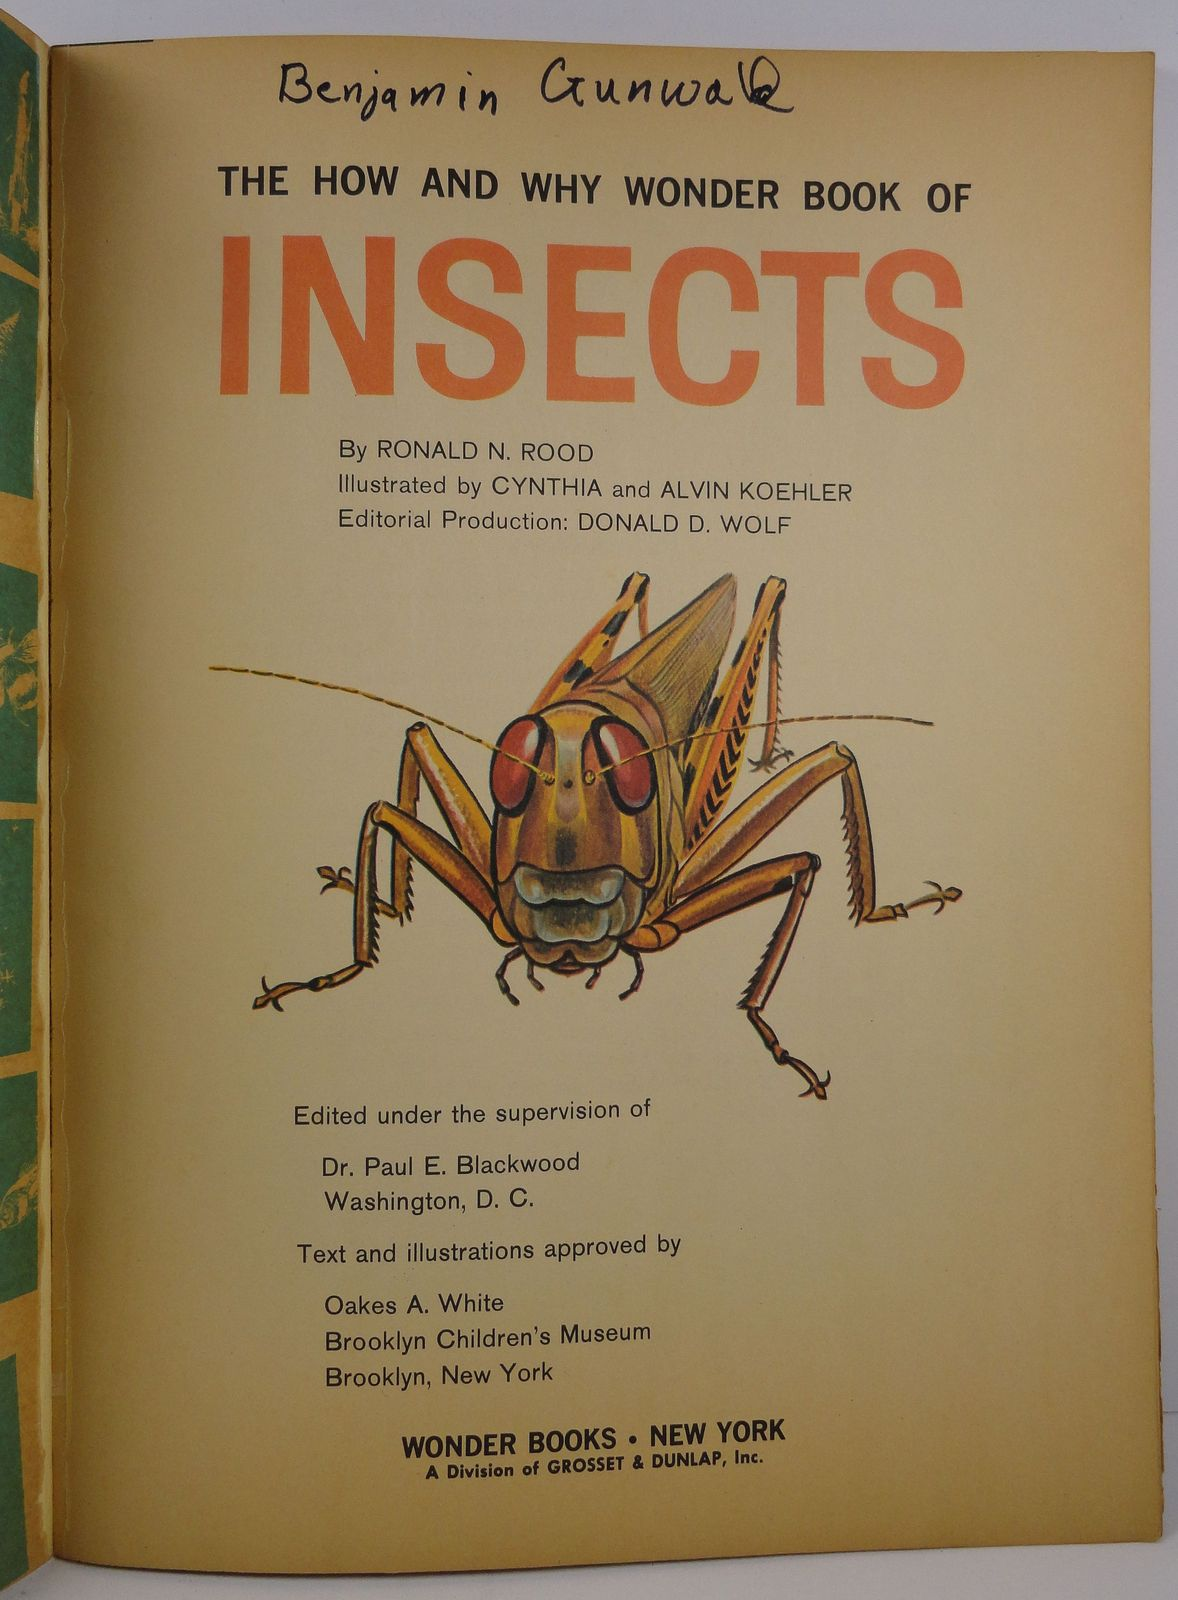 The How and Why Wonder Book of Insects Ronald N. Rood 1960